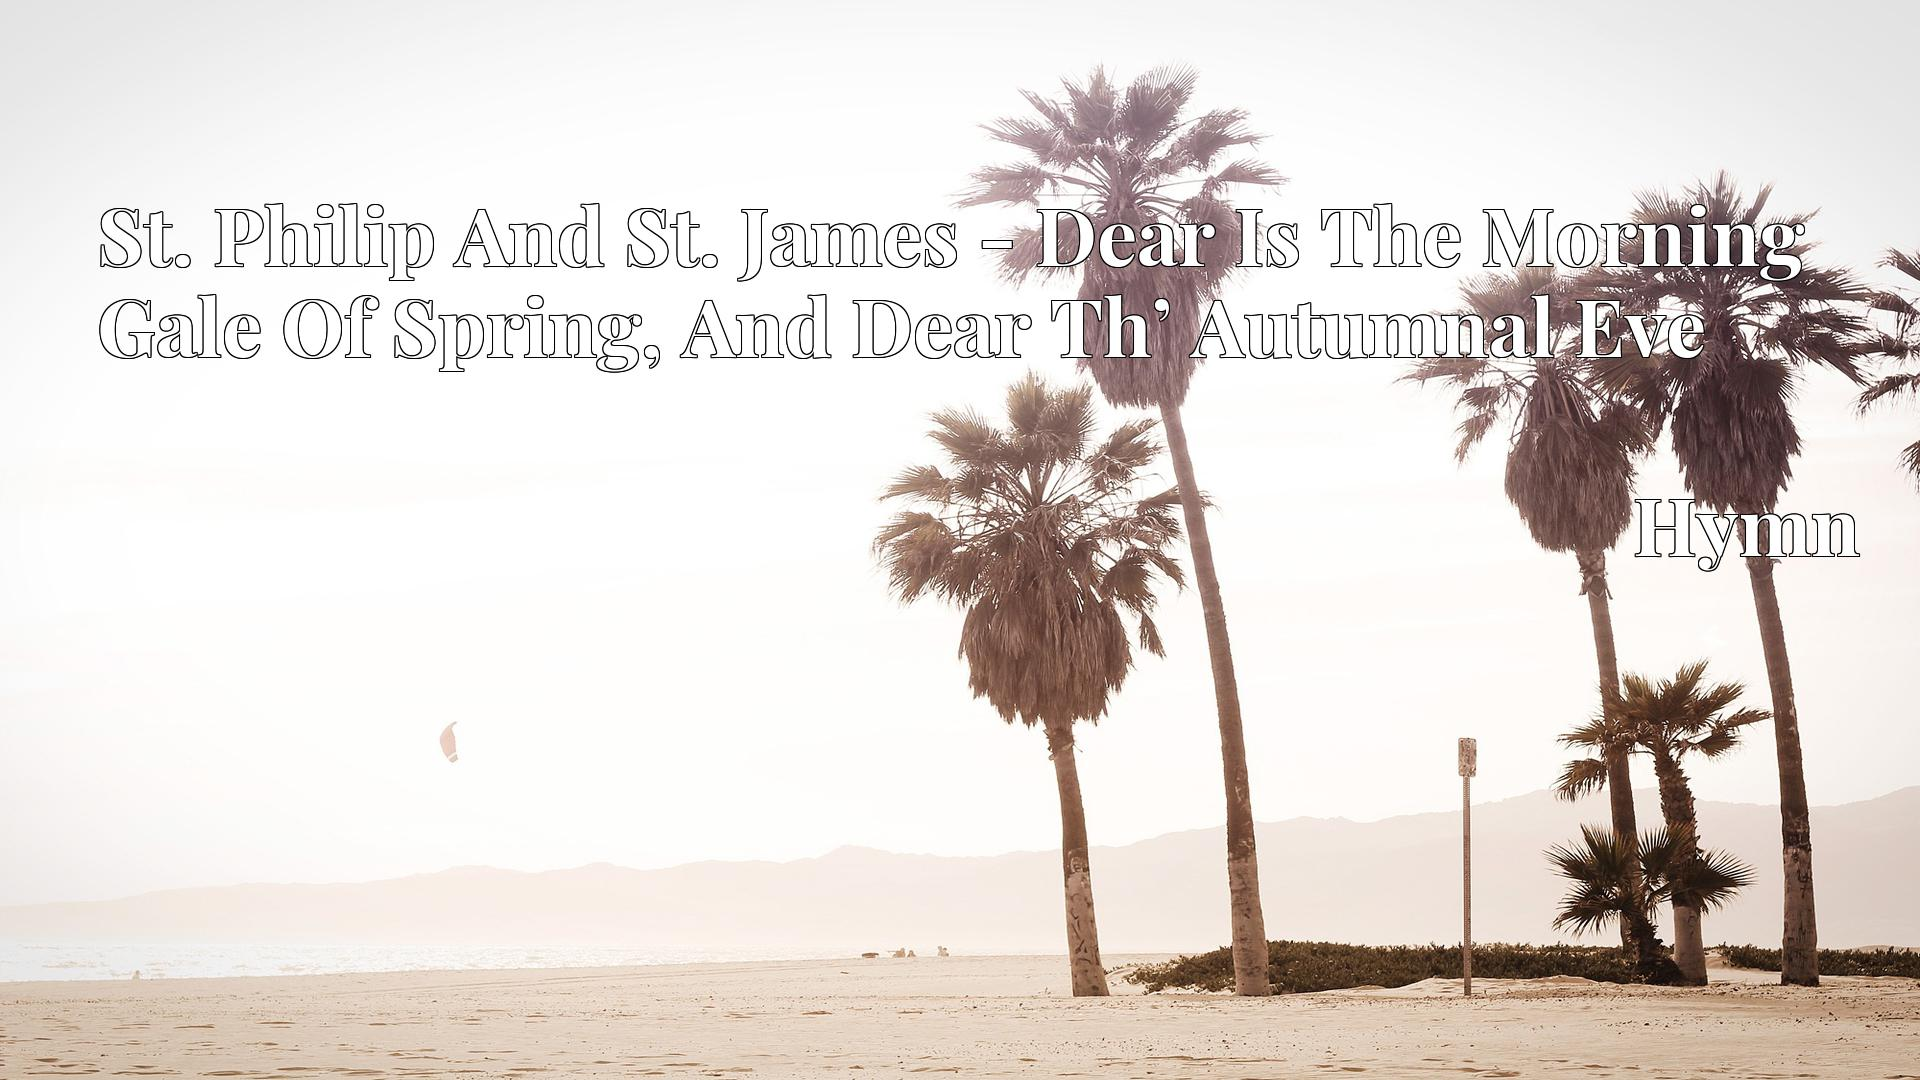 St. Philip And St. James - Dear Is The Morning Gale Of Spring, And Dear Th' Autumnal Eve - Hymn